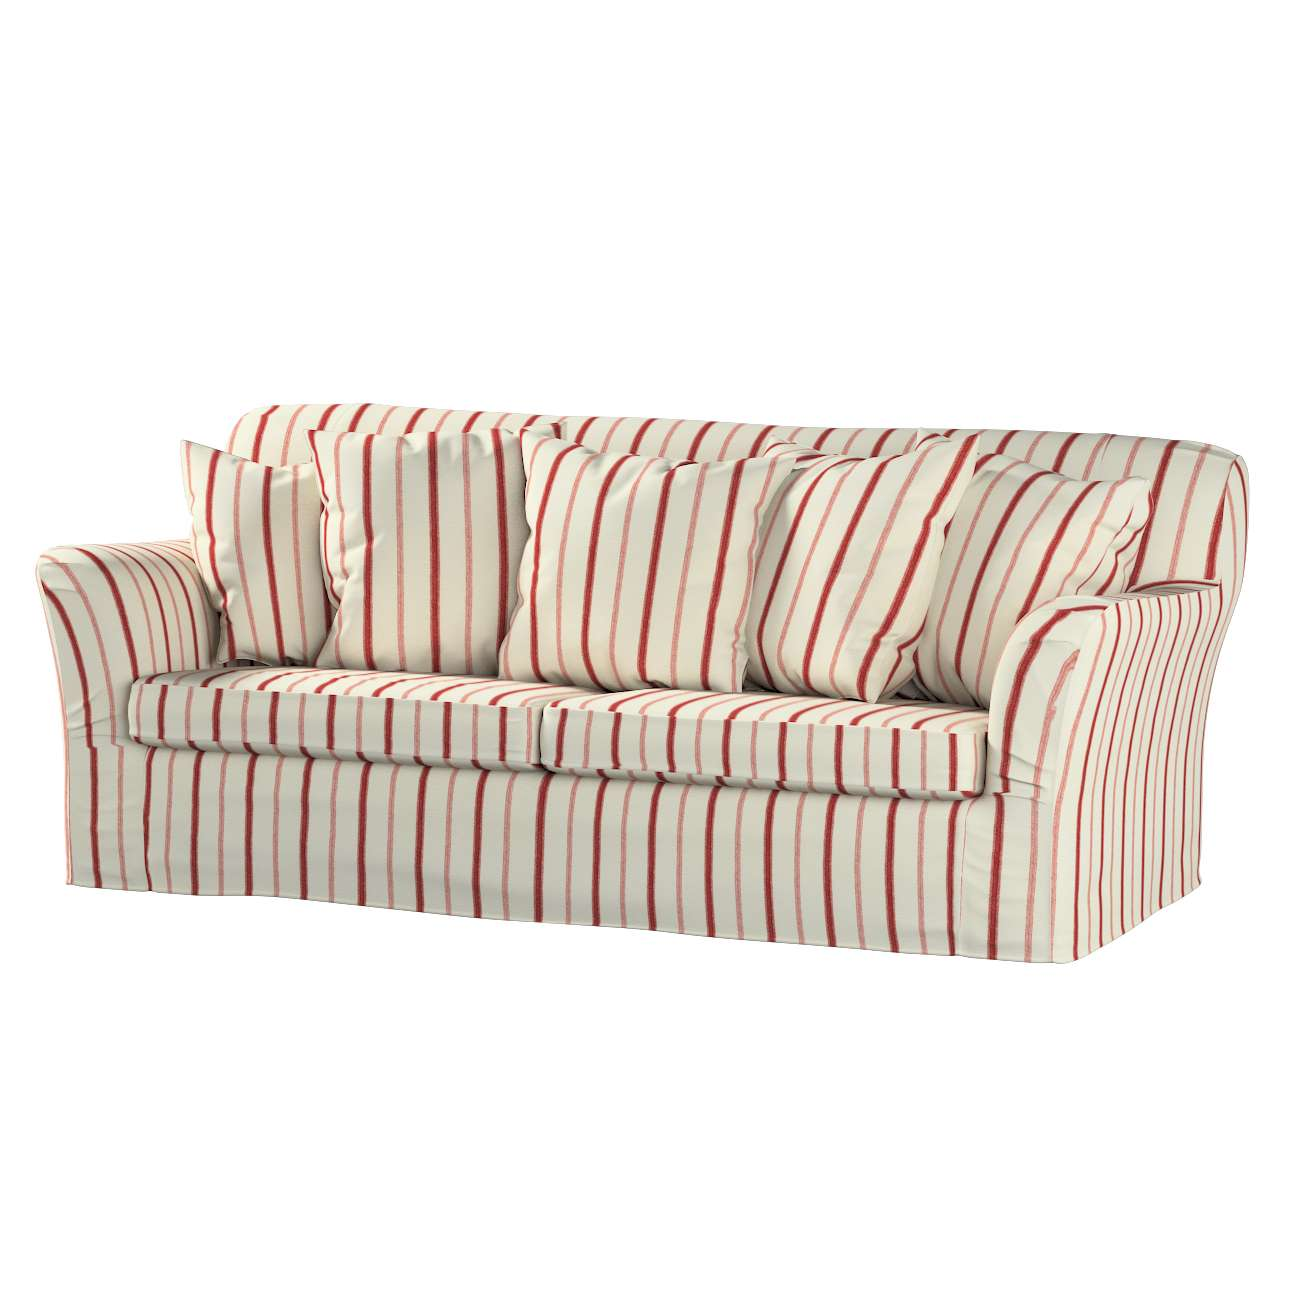 Tomelilla sofa bed cover Tomelilla sofa bed in collection Avinon, fabric: 129-15